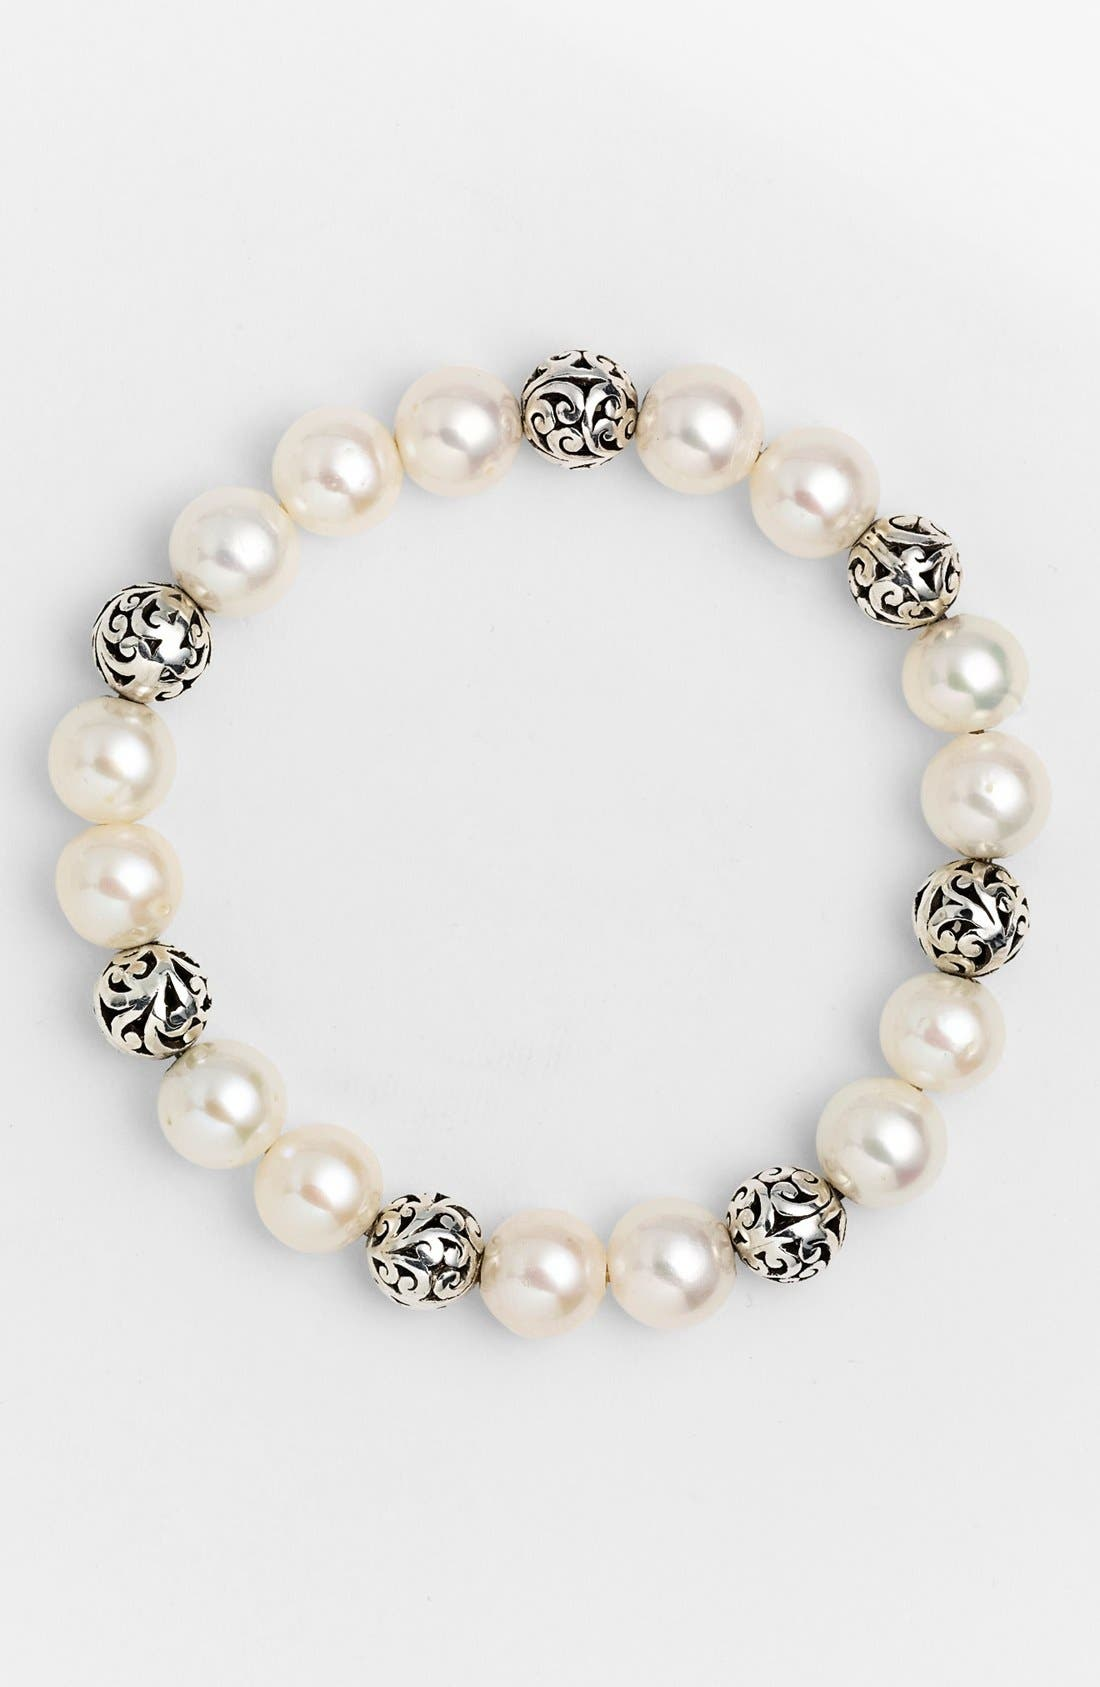 Main Image - Lois Hill 'Beach' Pearl Stretch Bracelet